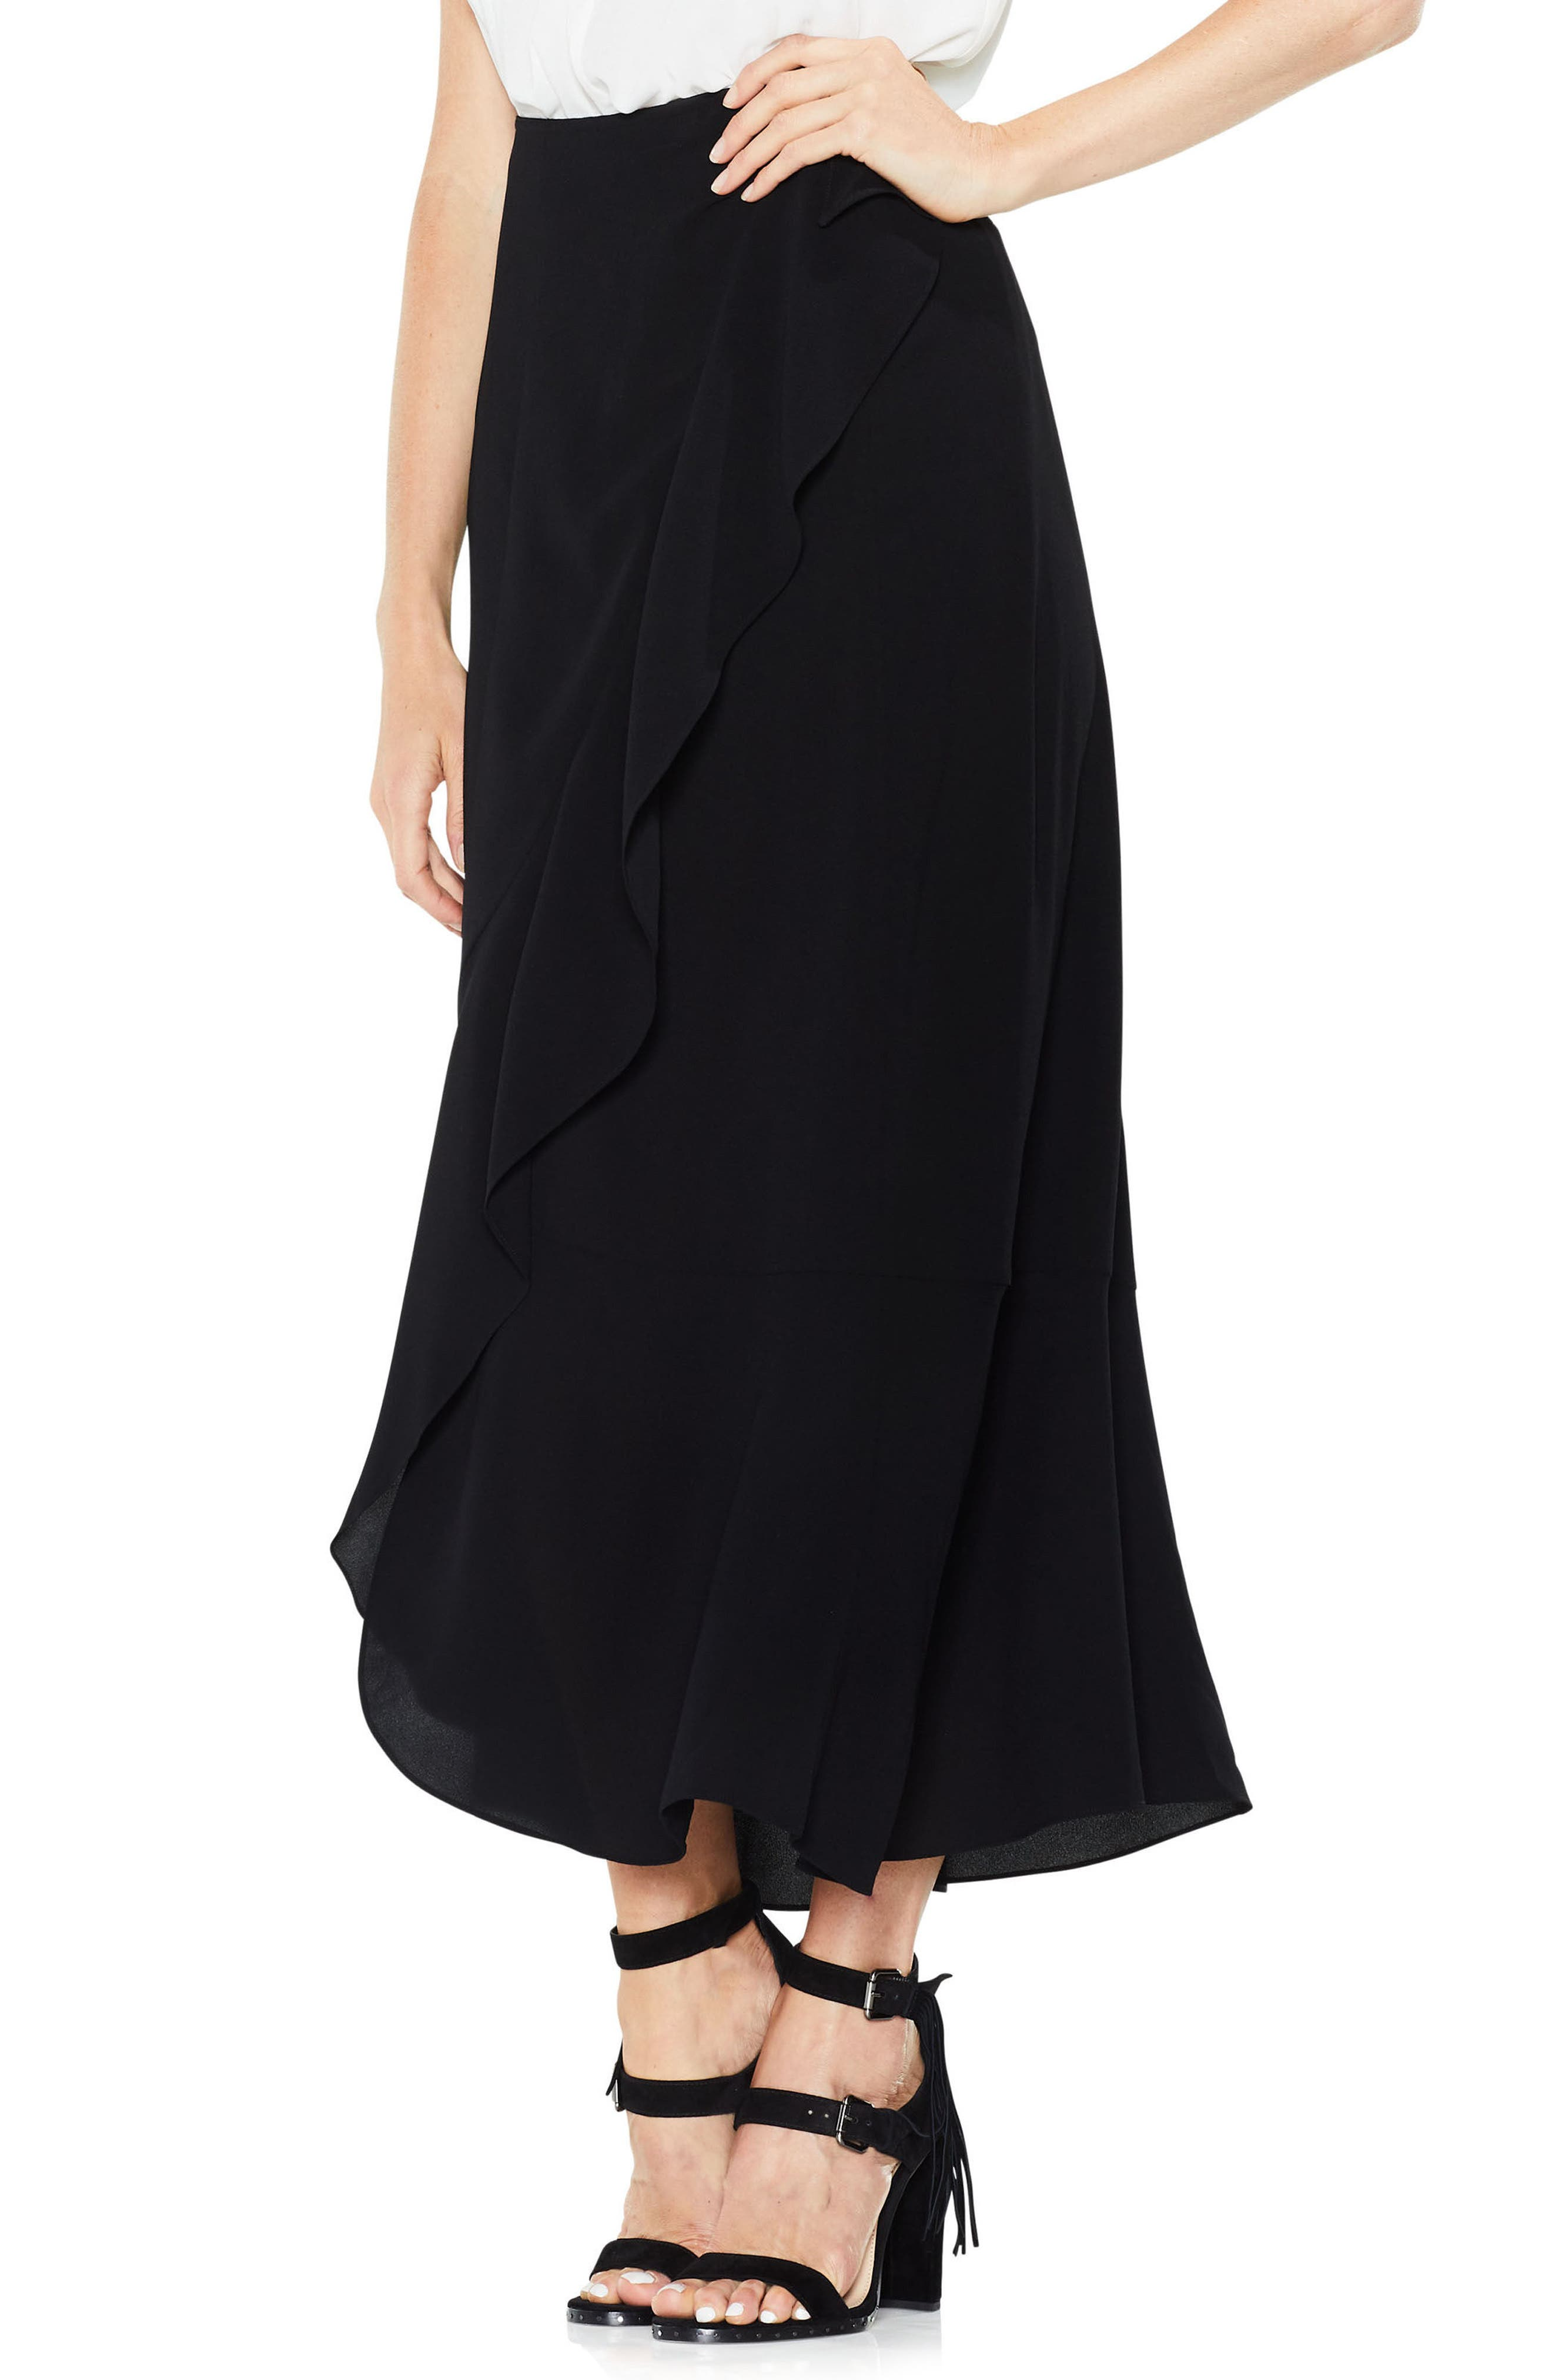 Vince Camuto Ruffle Faux Wrap Skirt